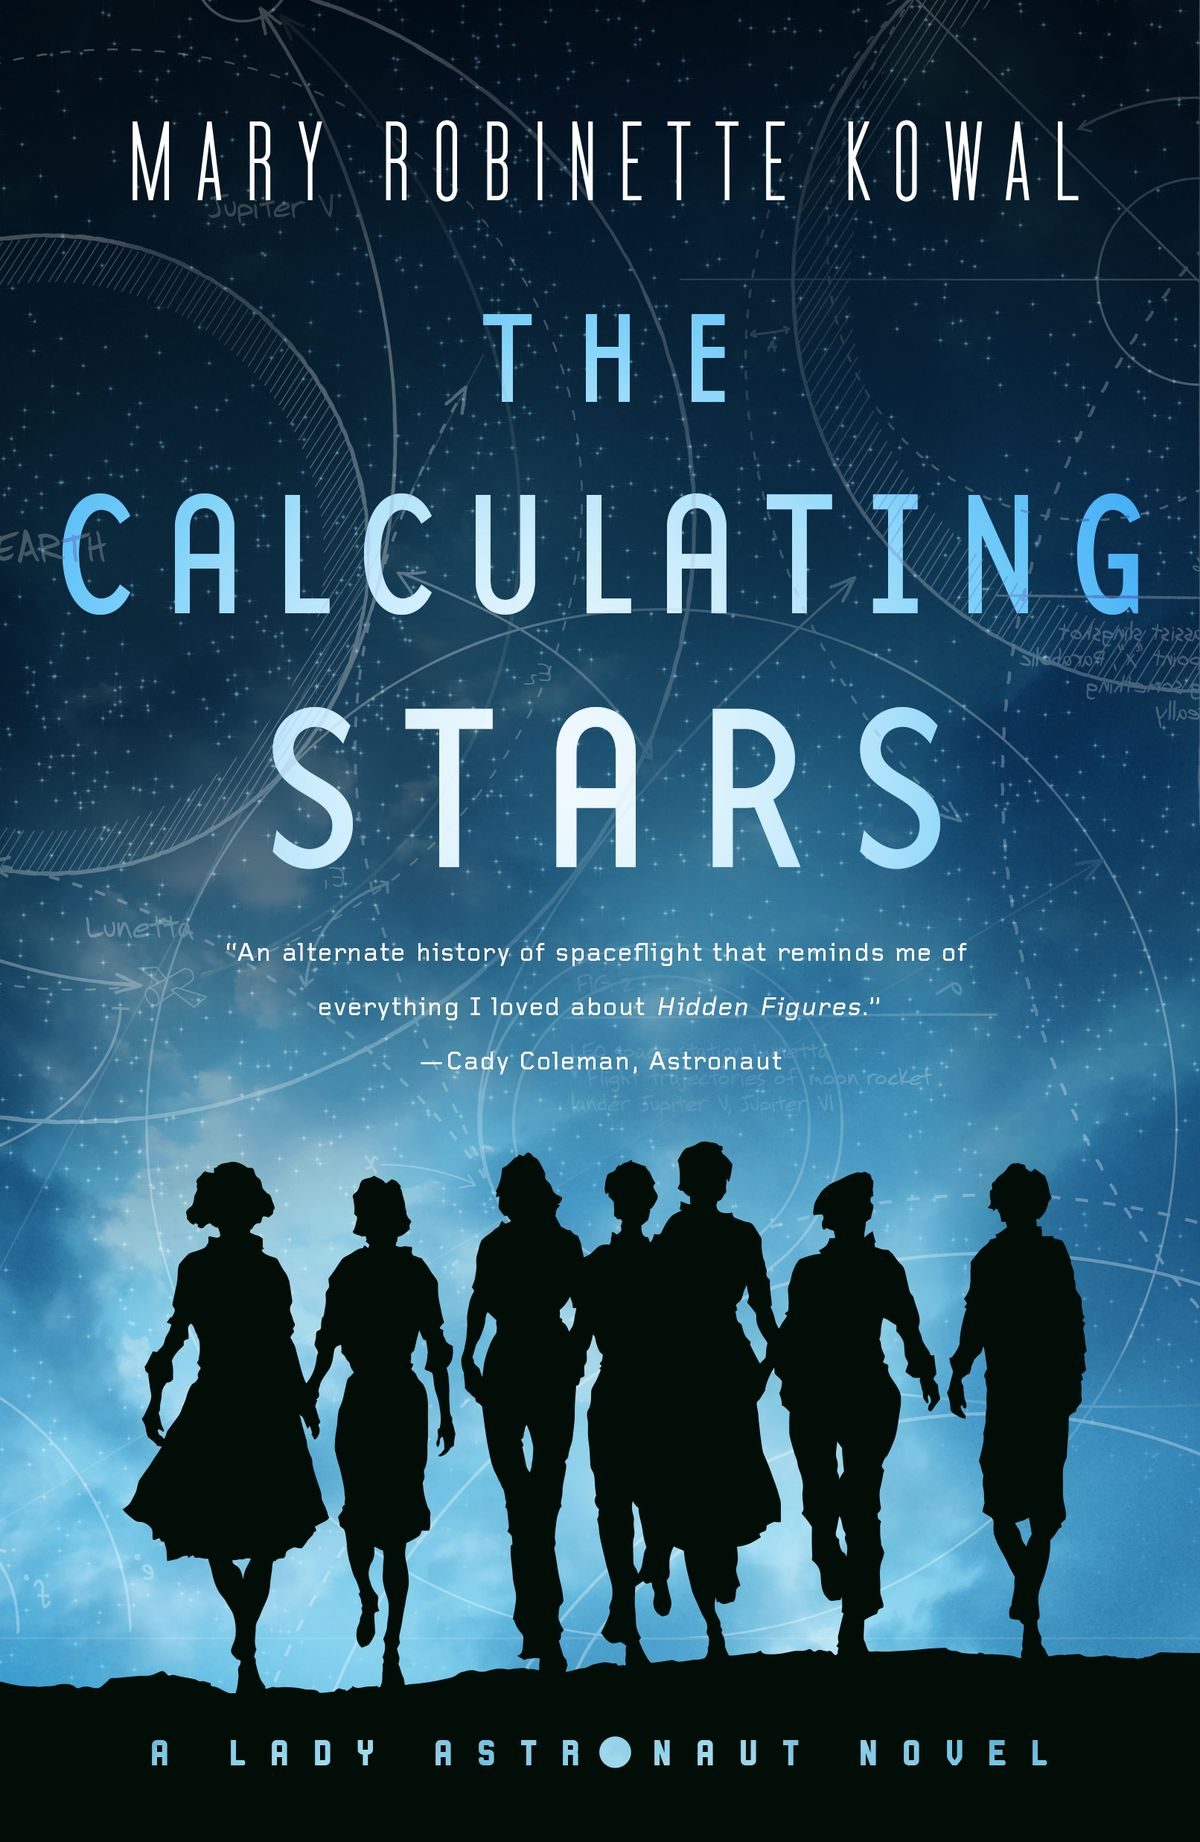 fiction books fantasy science sci novels stars calculating july fi fantastic mary recommendations should check